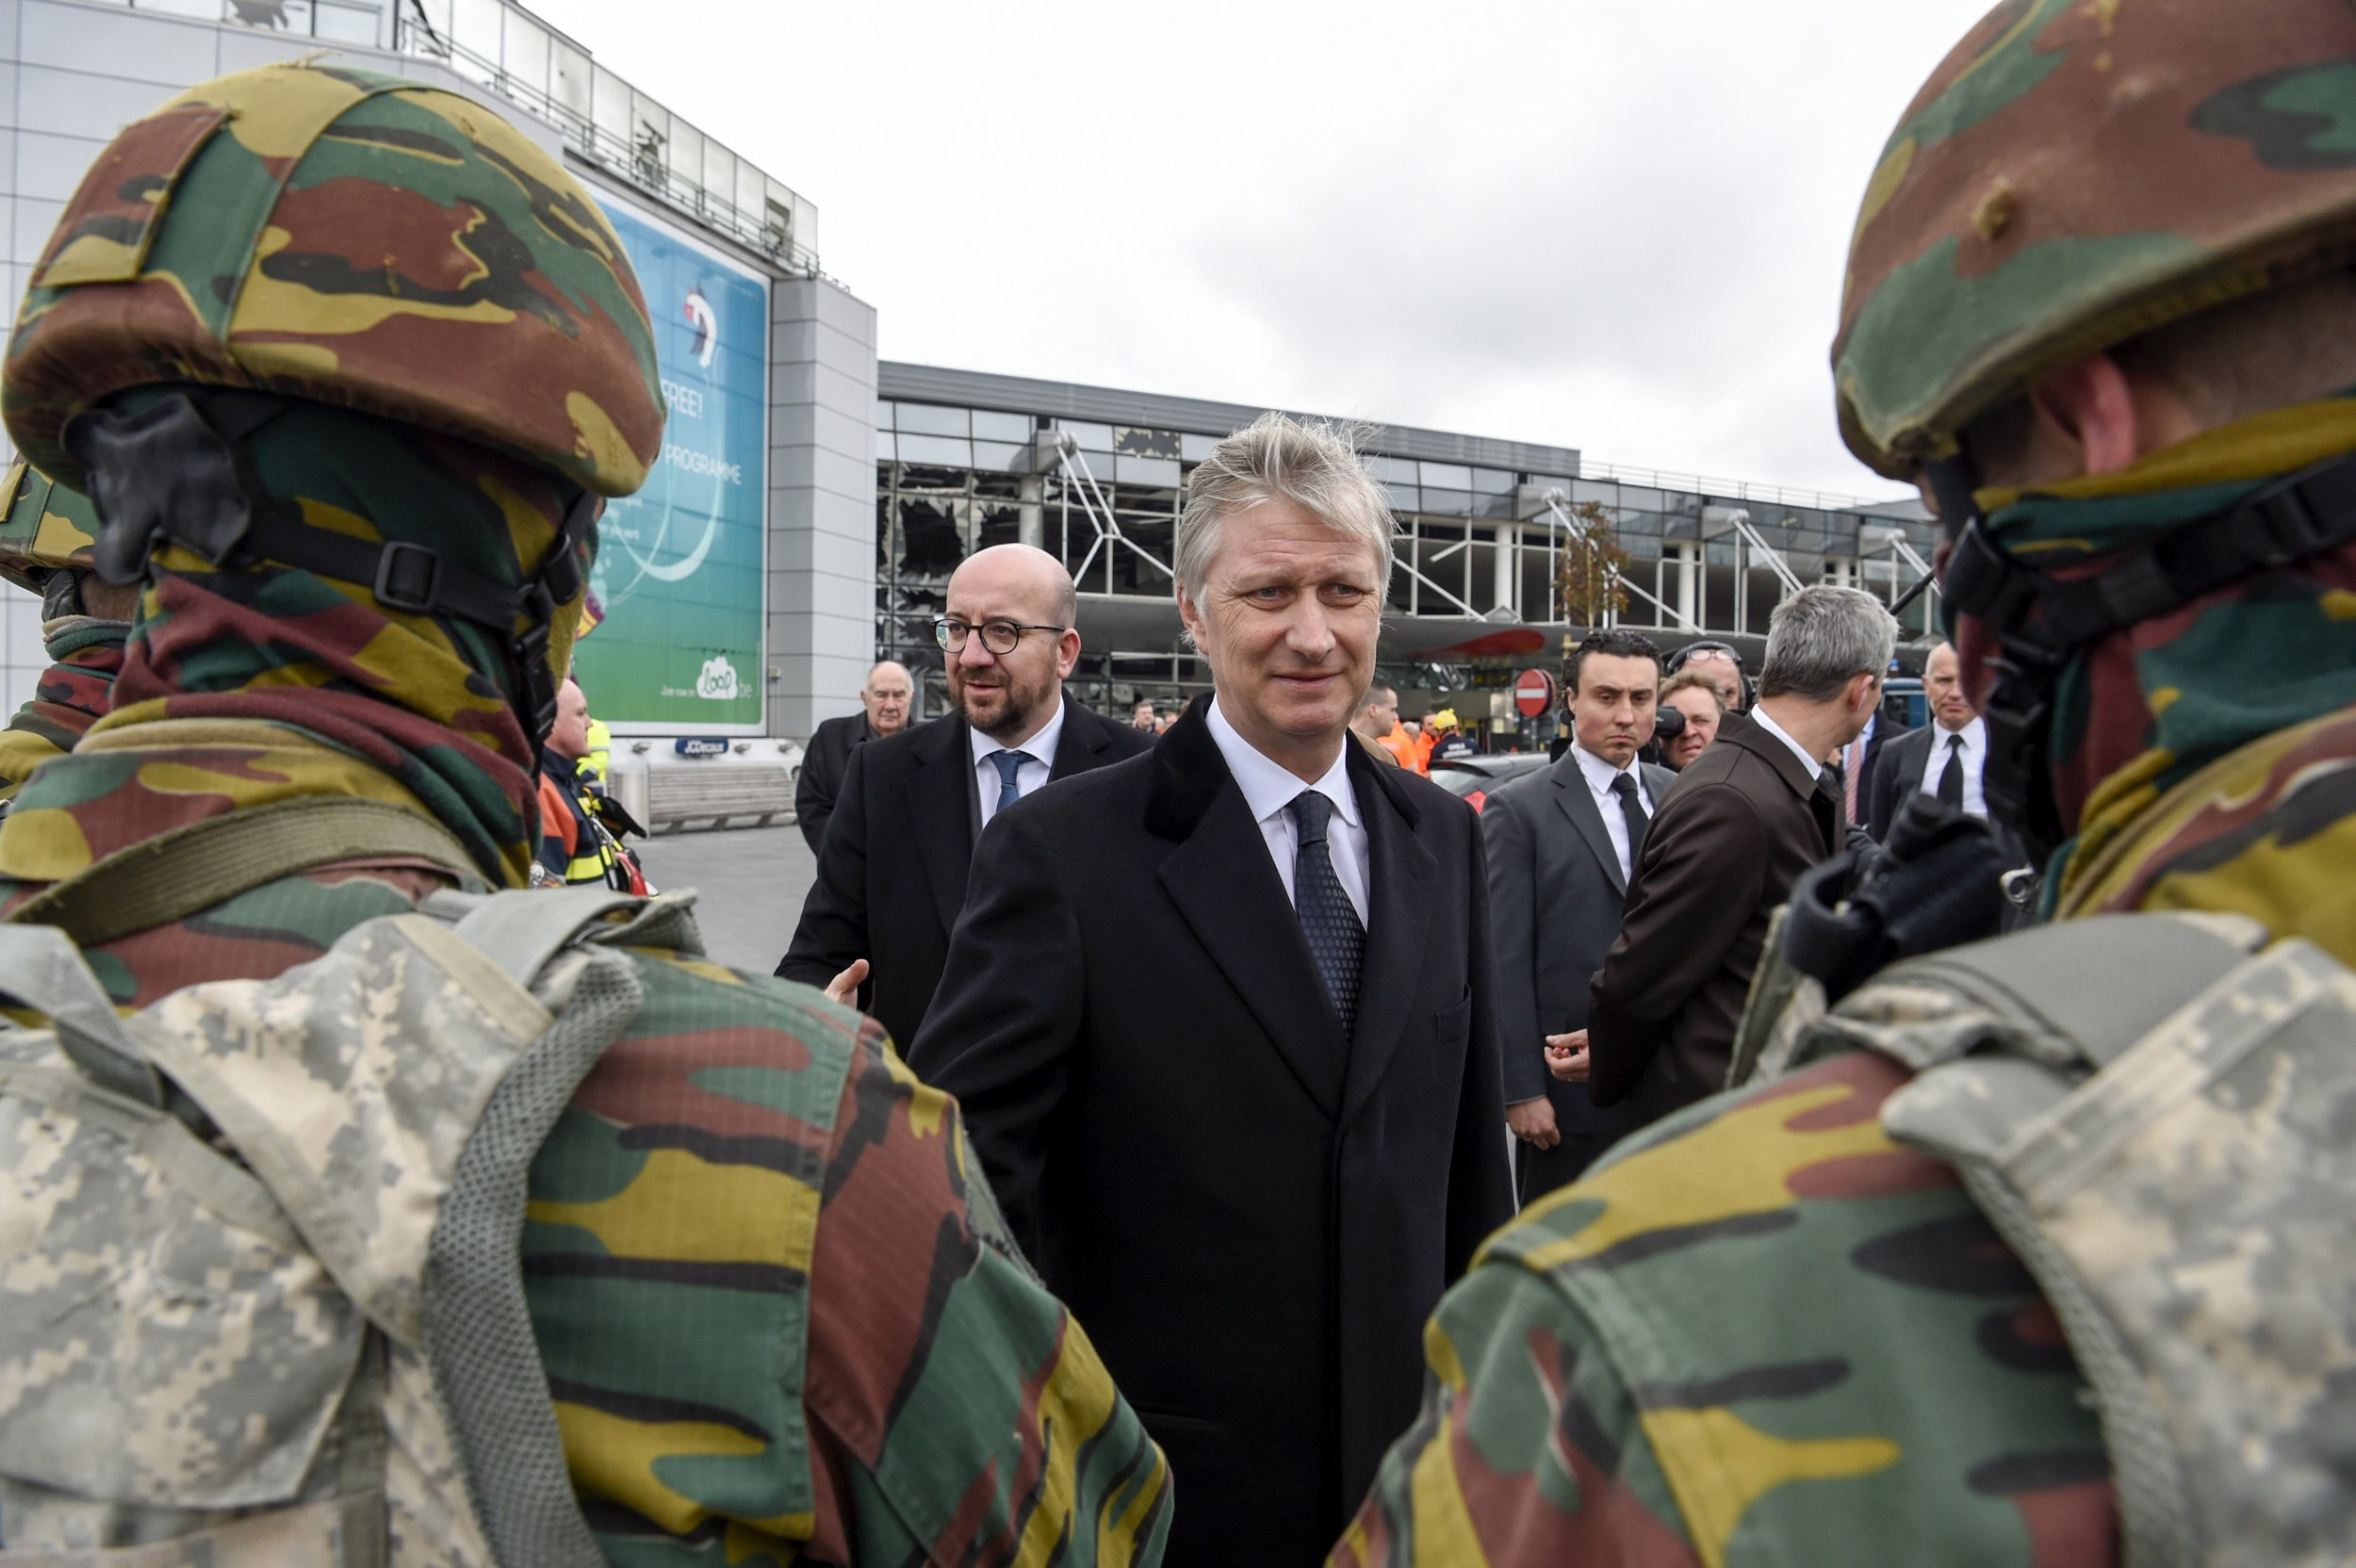 Belgium Middle East ISIS Resignations